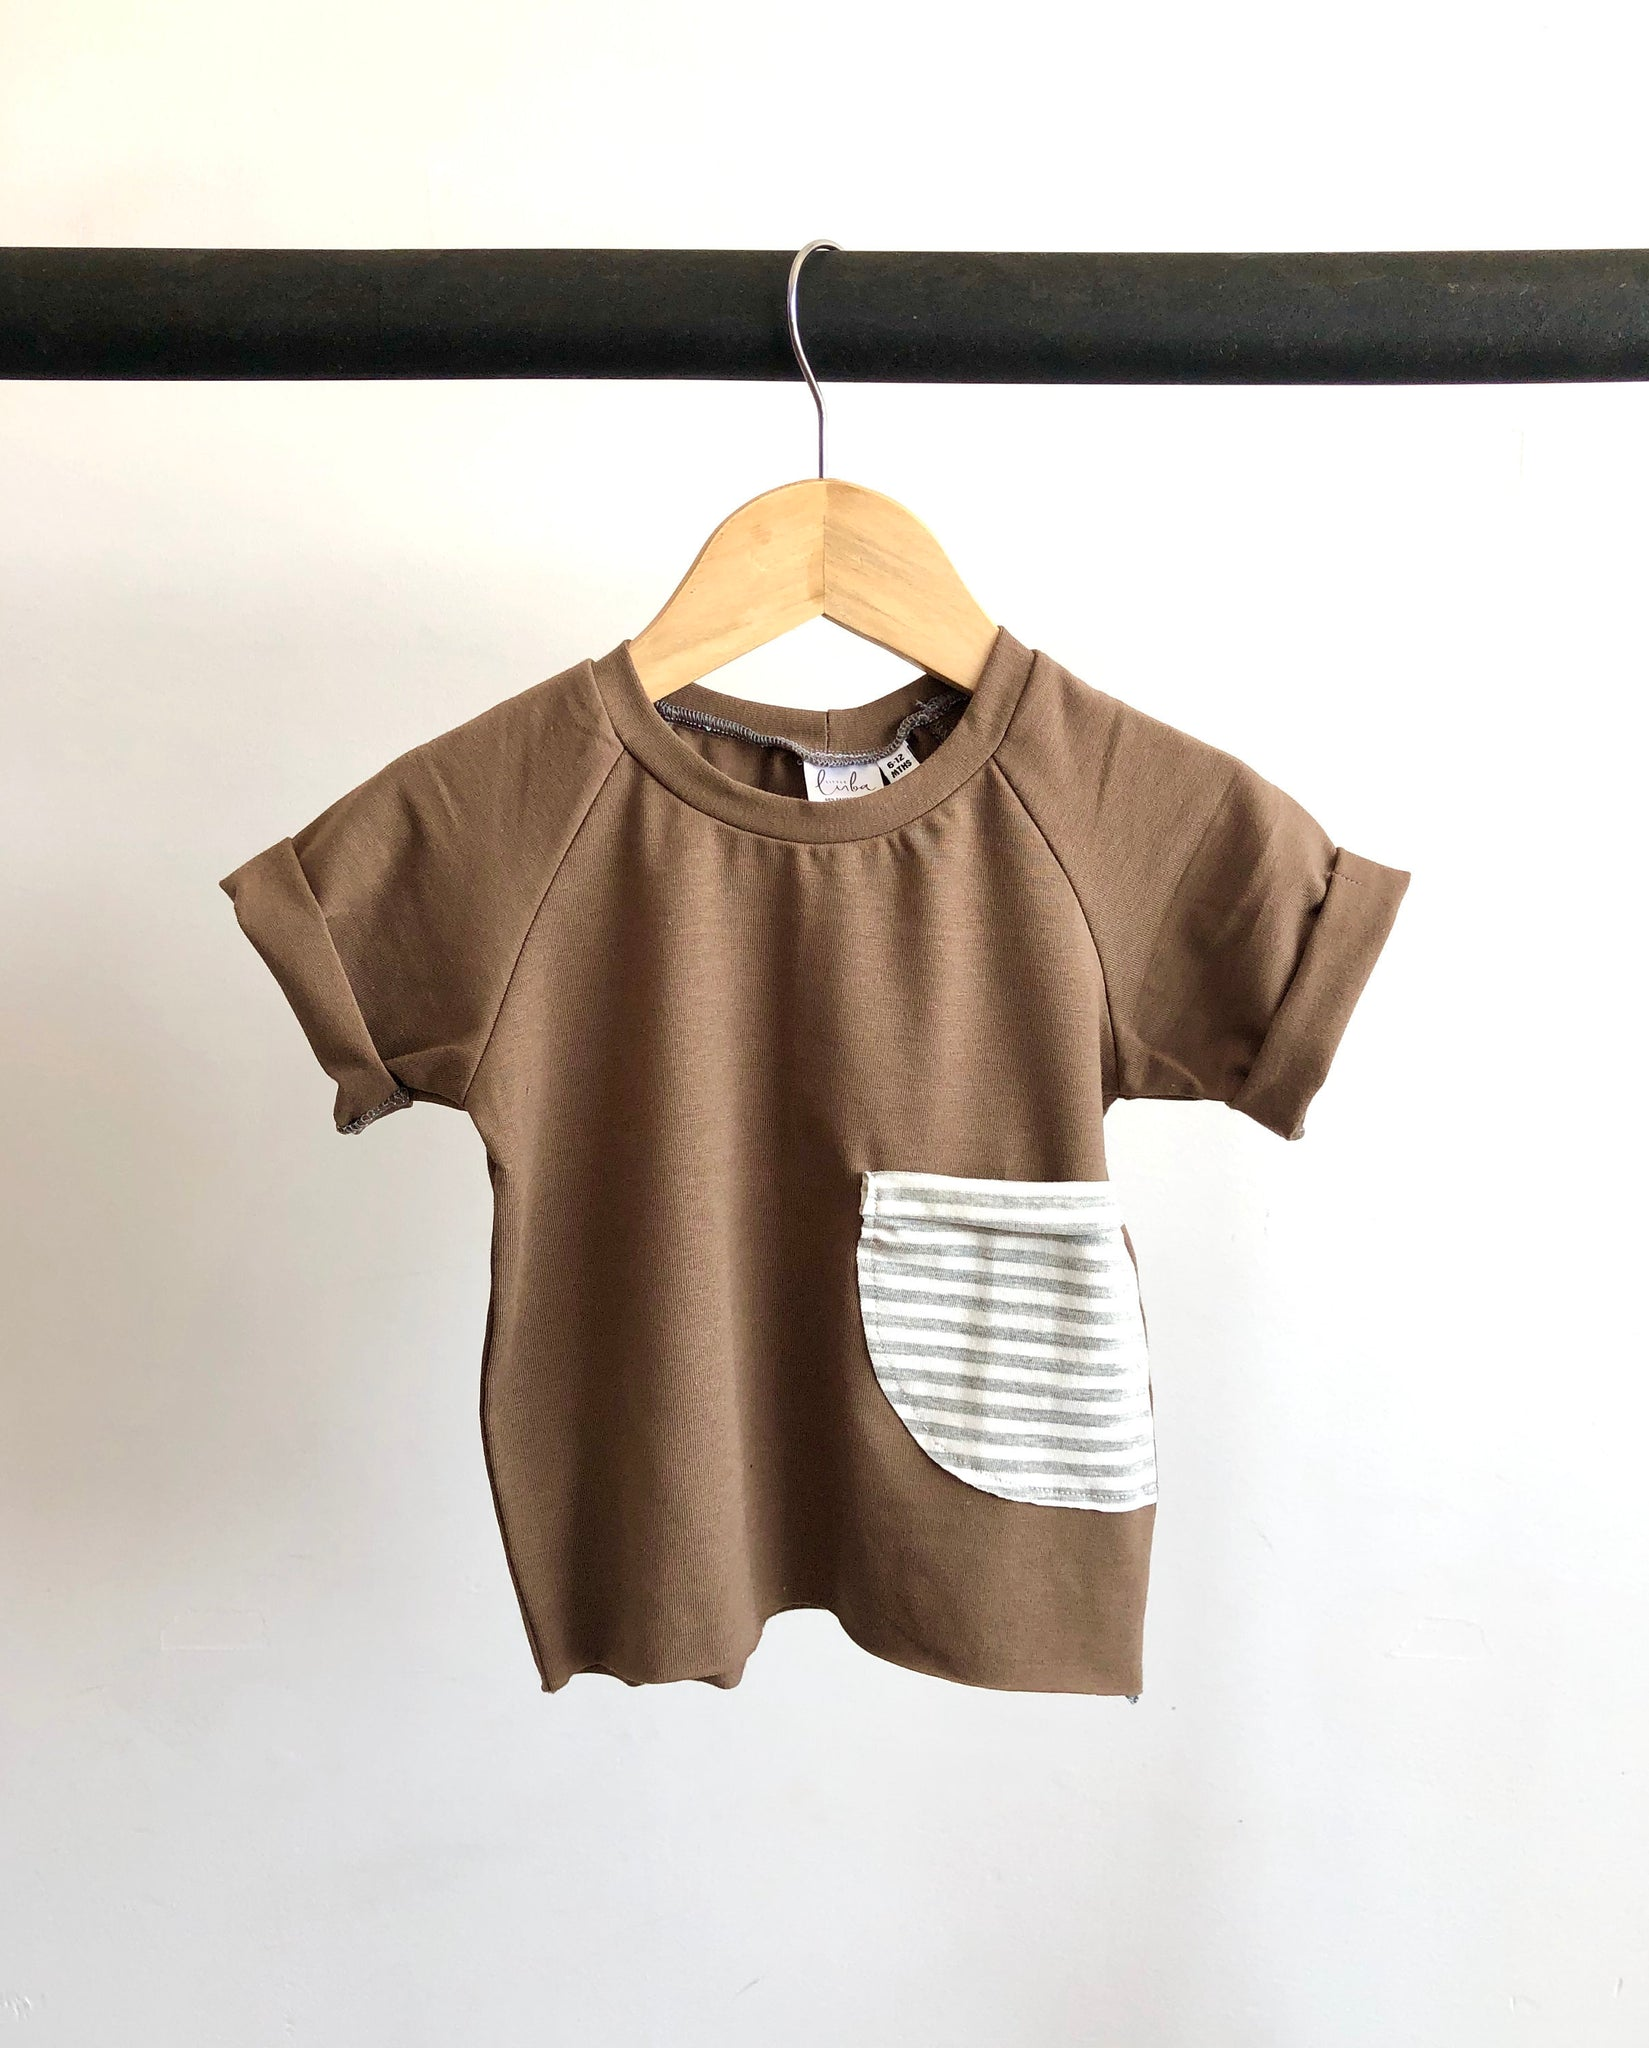 Pocket tee/ Chocolate